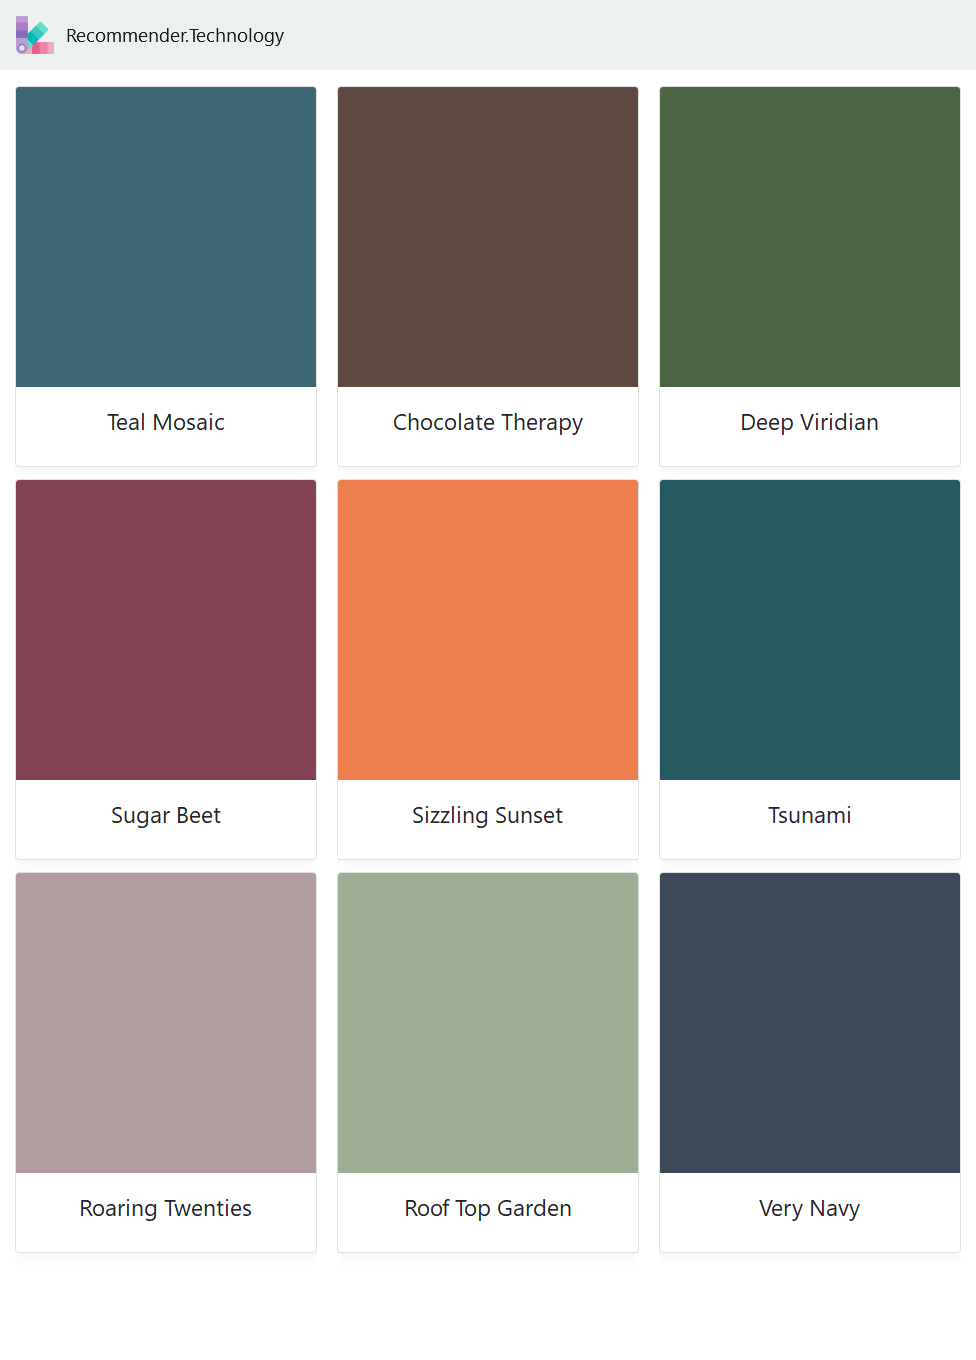 Teal Mosaic Sugar Beet Roaring Twenties Chocolate Therapy Sizzling Sunset Roof Top Garden Deep Viridia Behr Colors Paint Color Palettes Behr Paint Colors